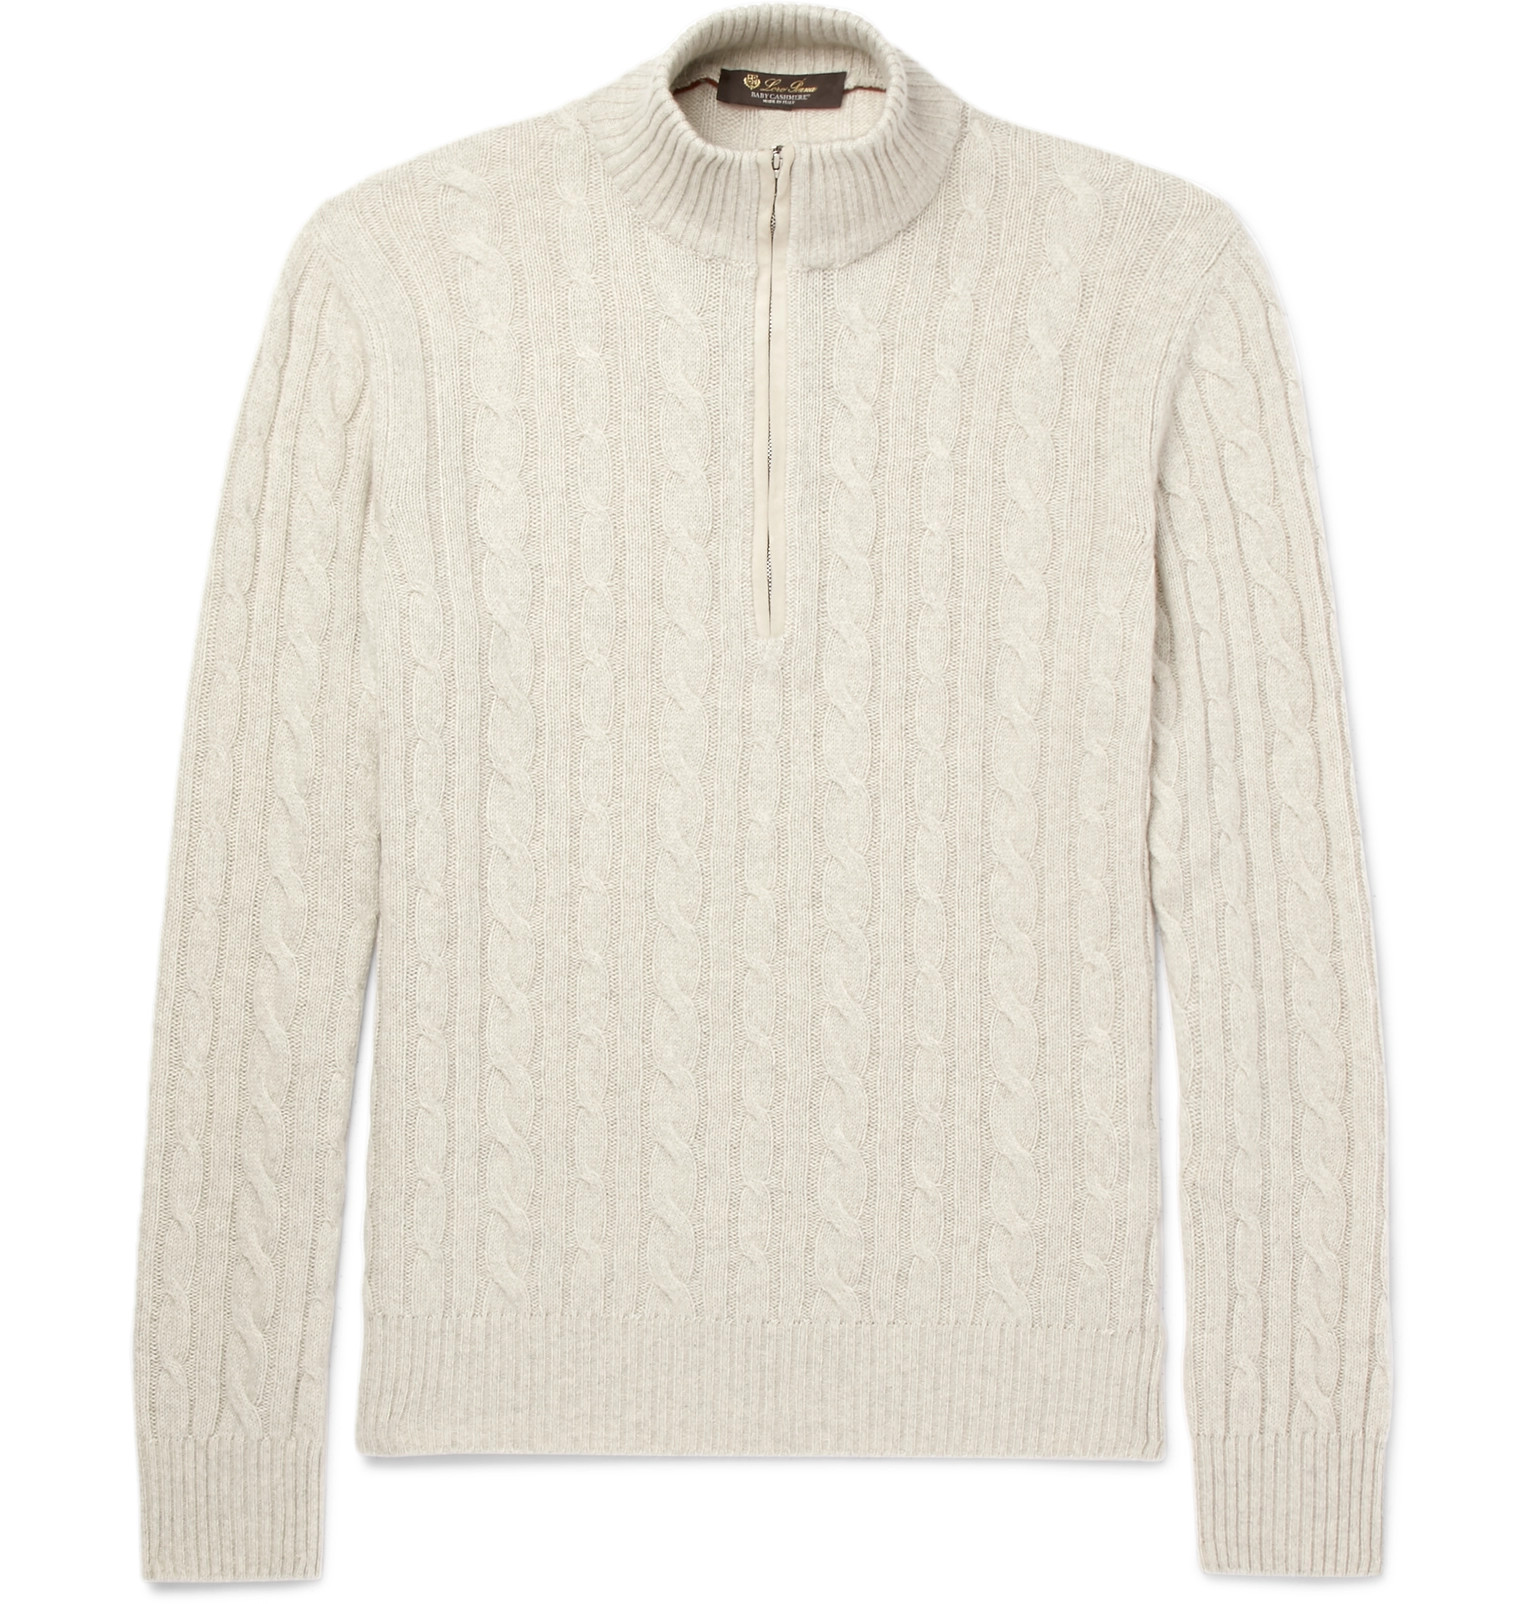 ce9b1a941600 Loro Piana - Suede-Trimmed Cable-Knit Baby Cashmere Half-Zip Sweater